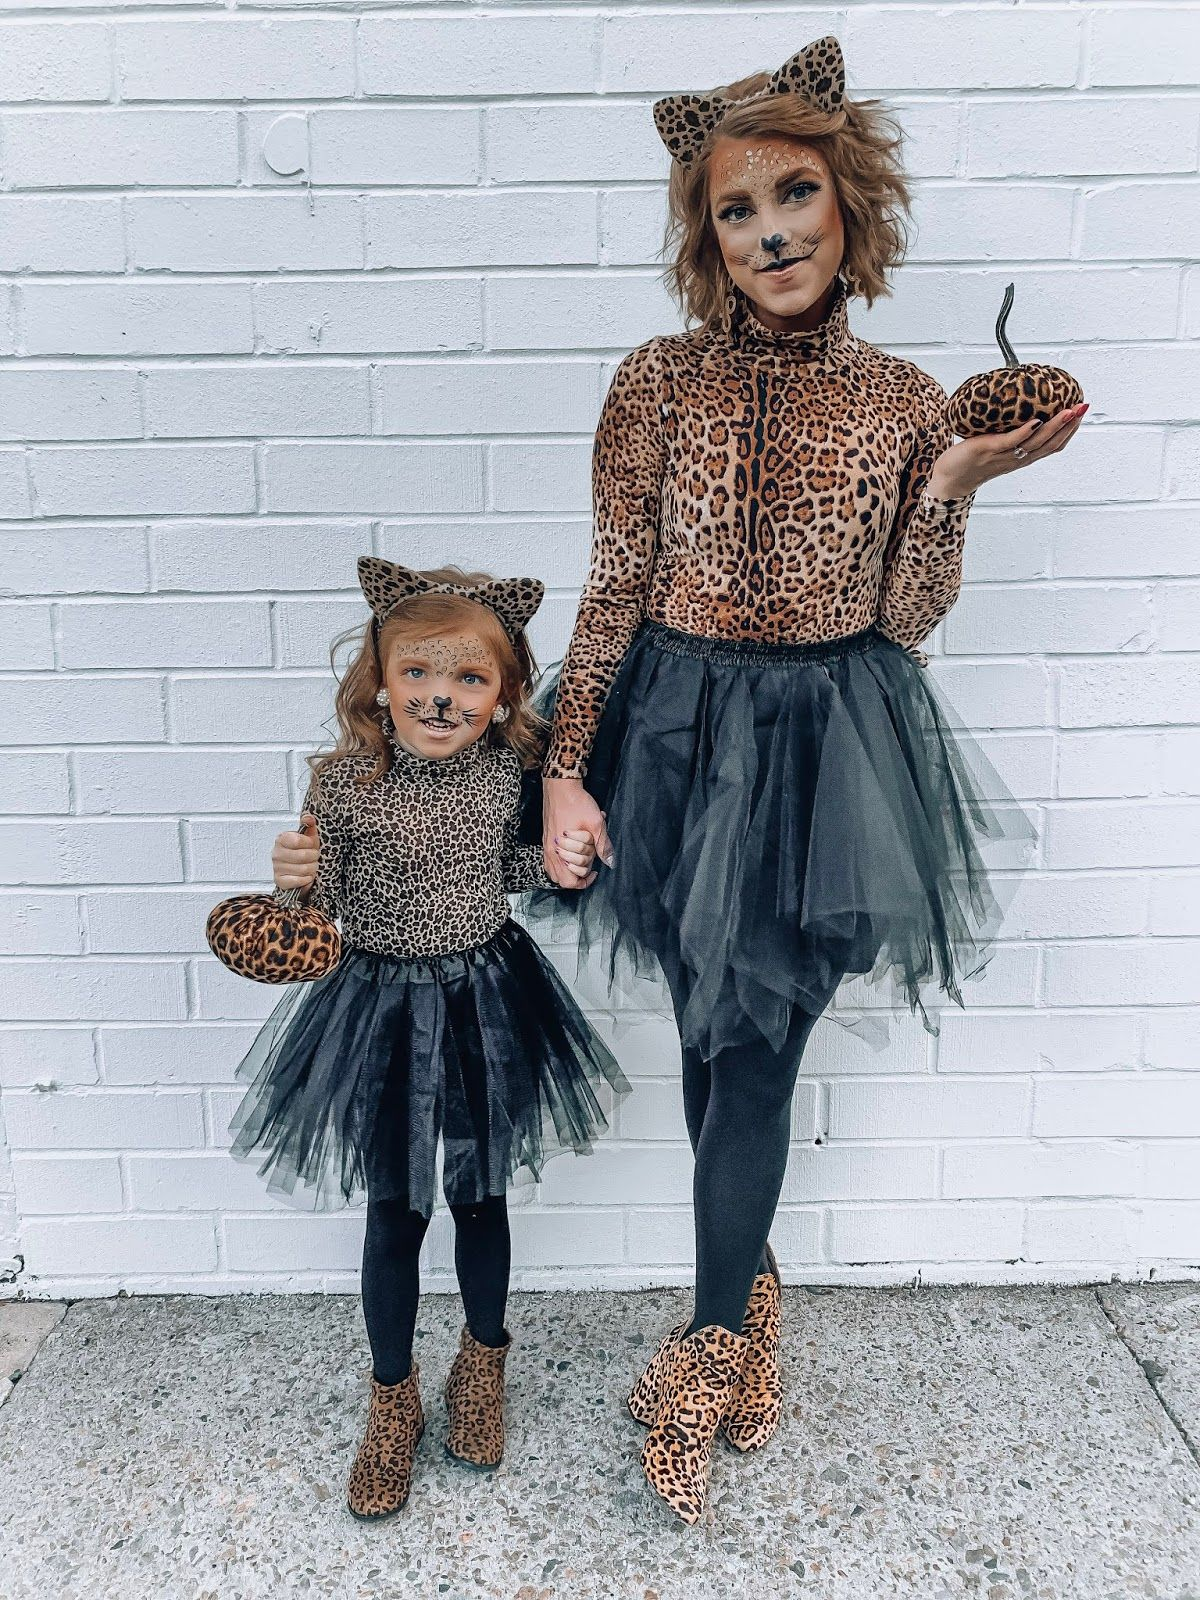 Mommy Me Halloween Costume Ideas Diy Leopard Costumes Daughter Halloween Costumes Leopard Costume Diy Costumes Women